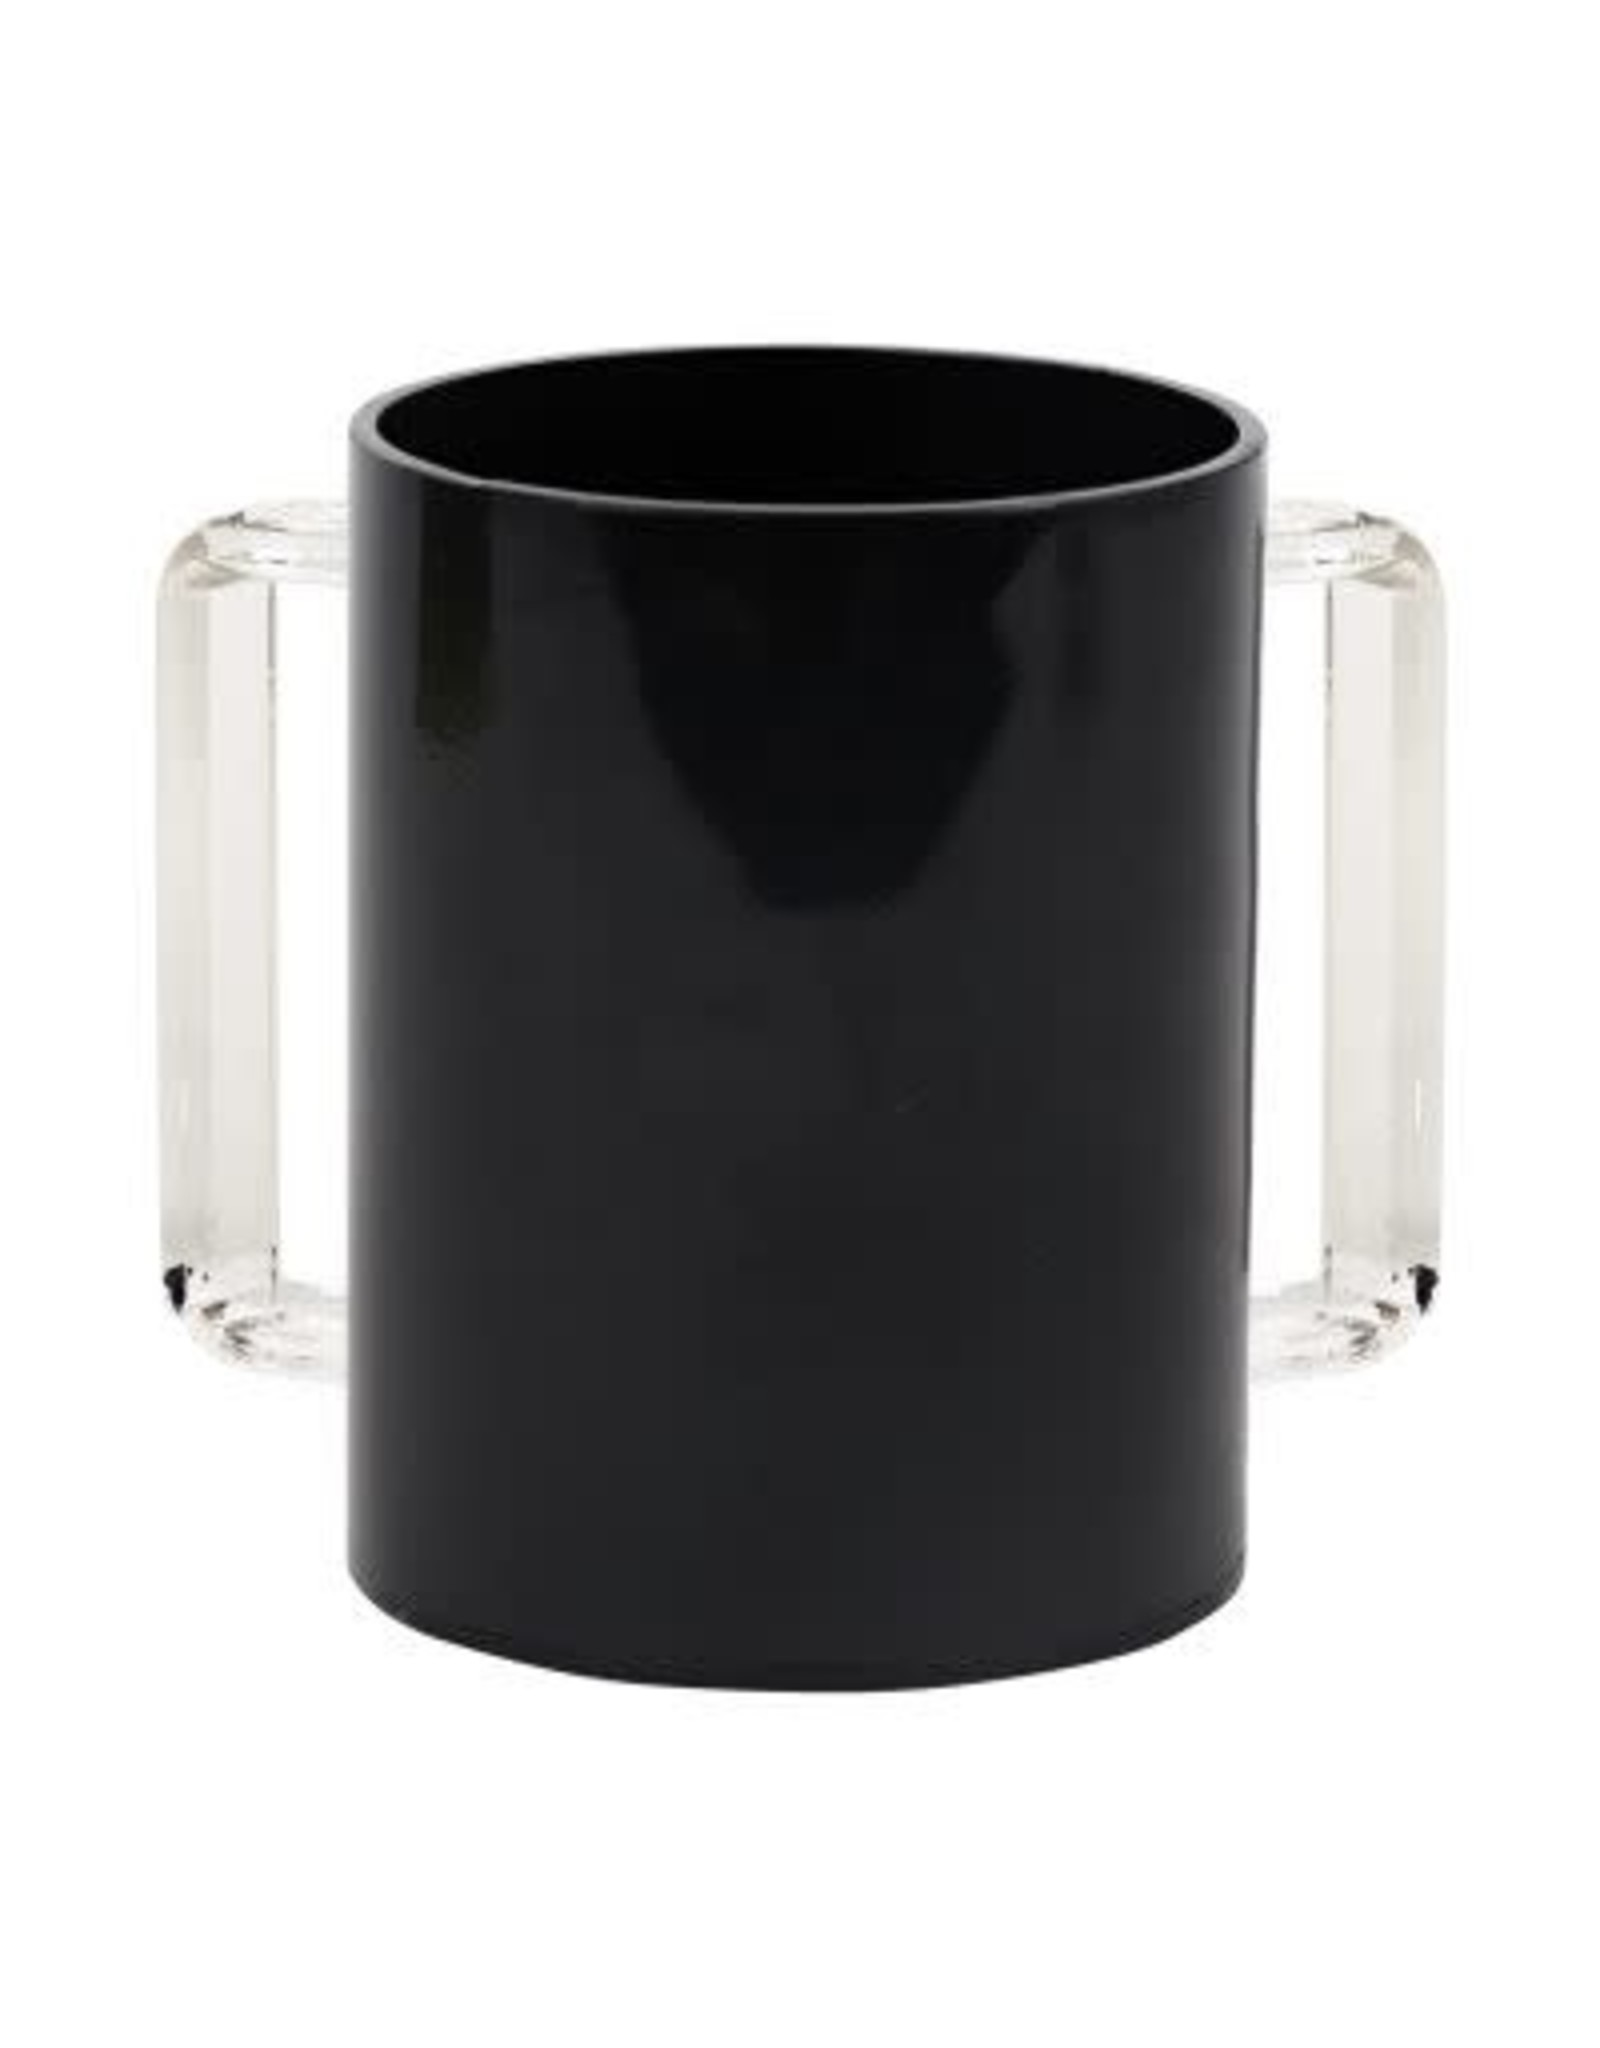 57188  Acrylic Washing Cup  Black Clear Handles 5""